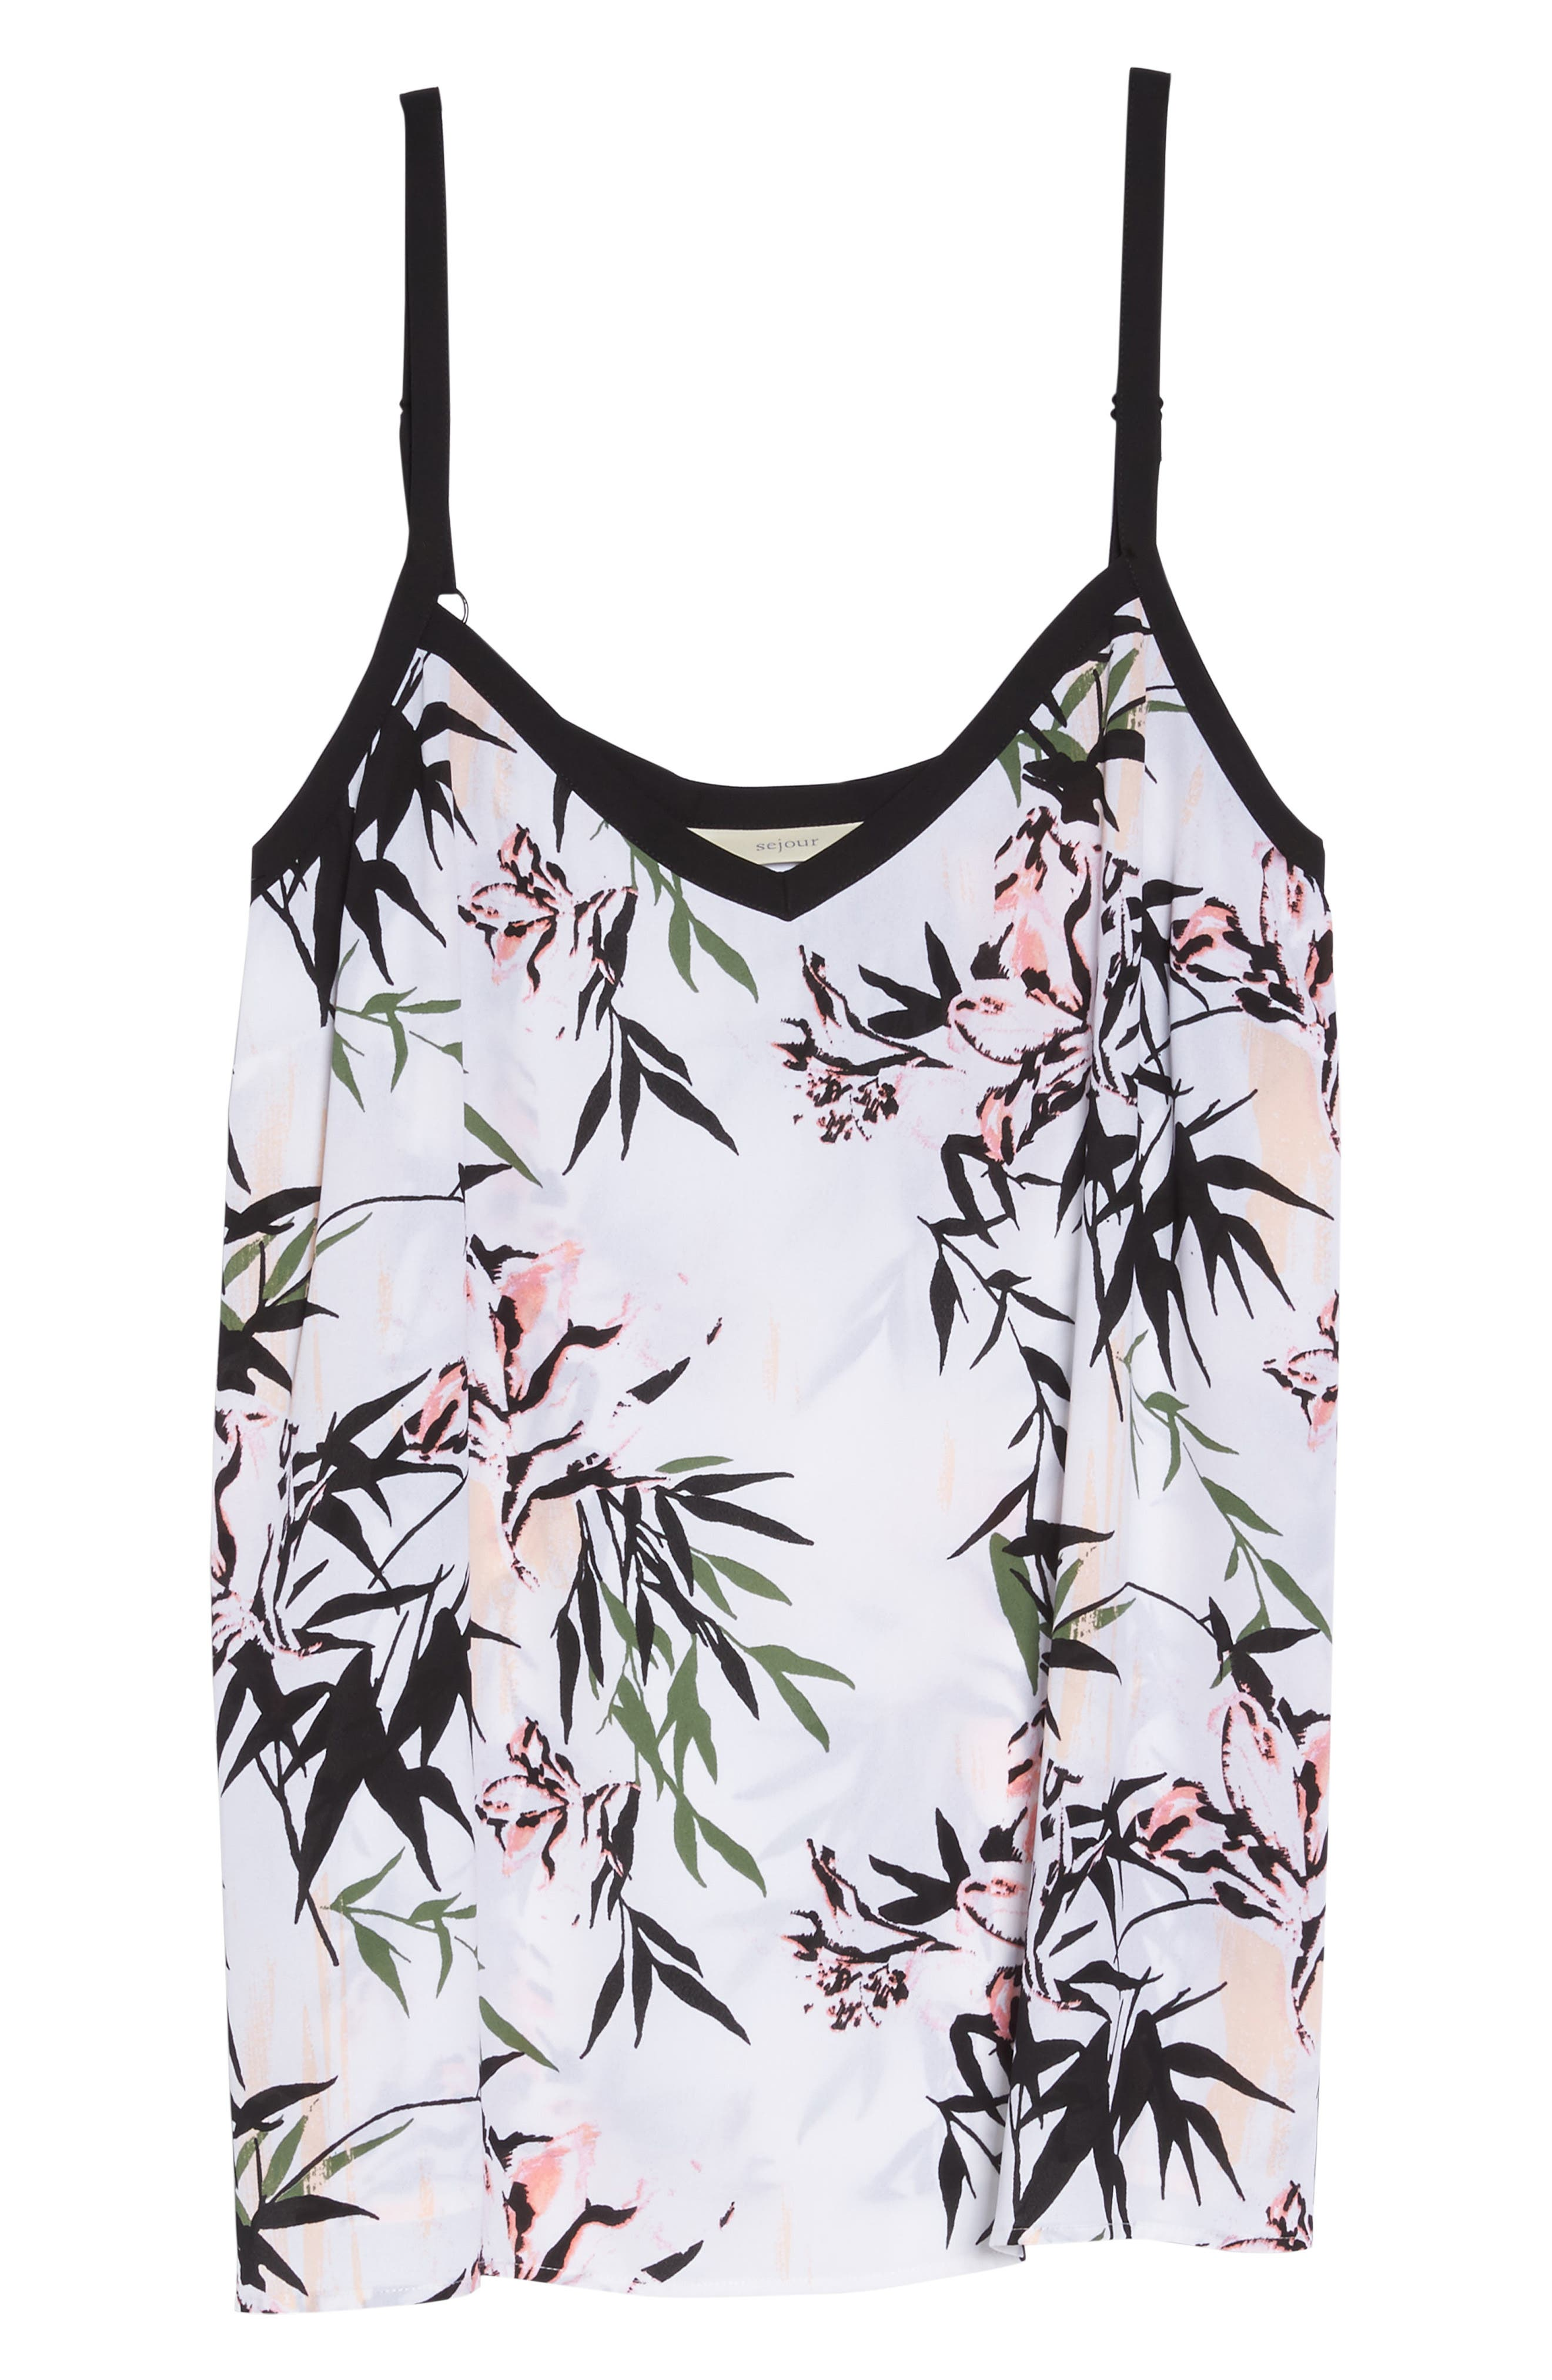 Swing Camisole,                             Alternate thumbnail 7, color,                             White- Pink Bamboo Print